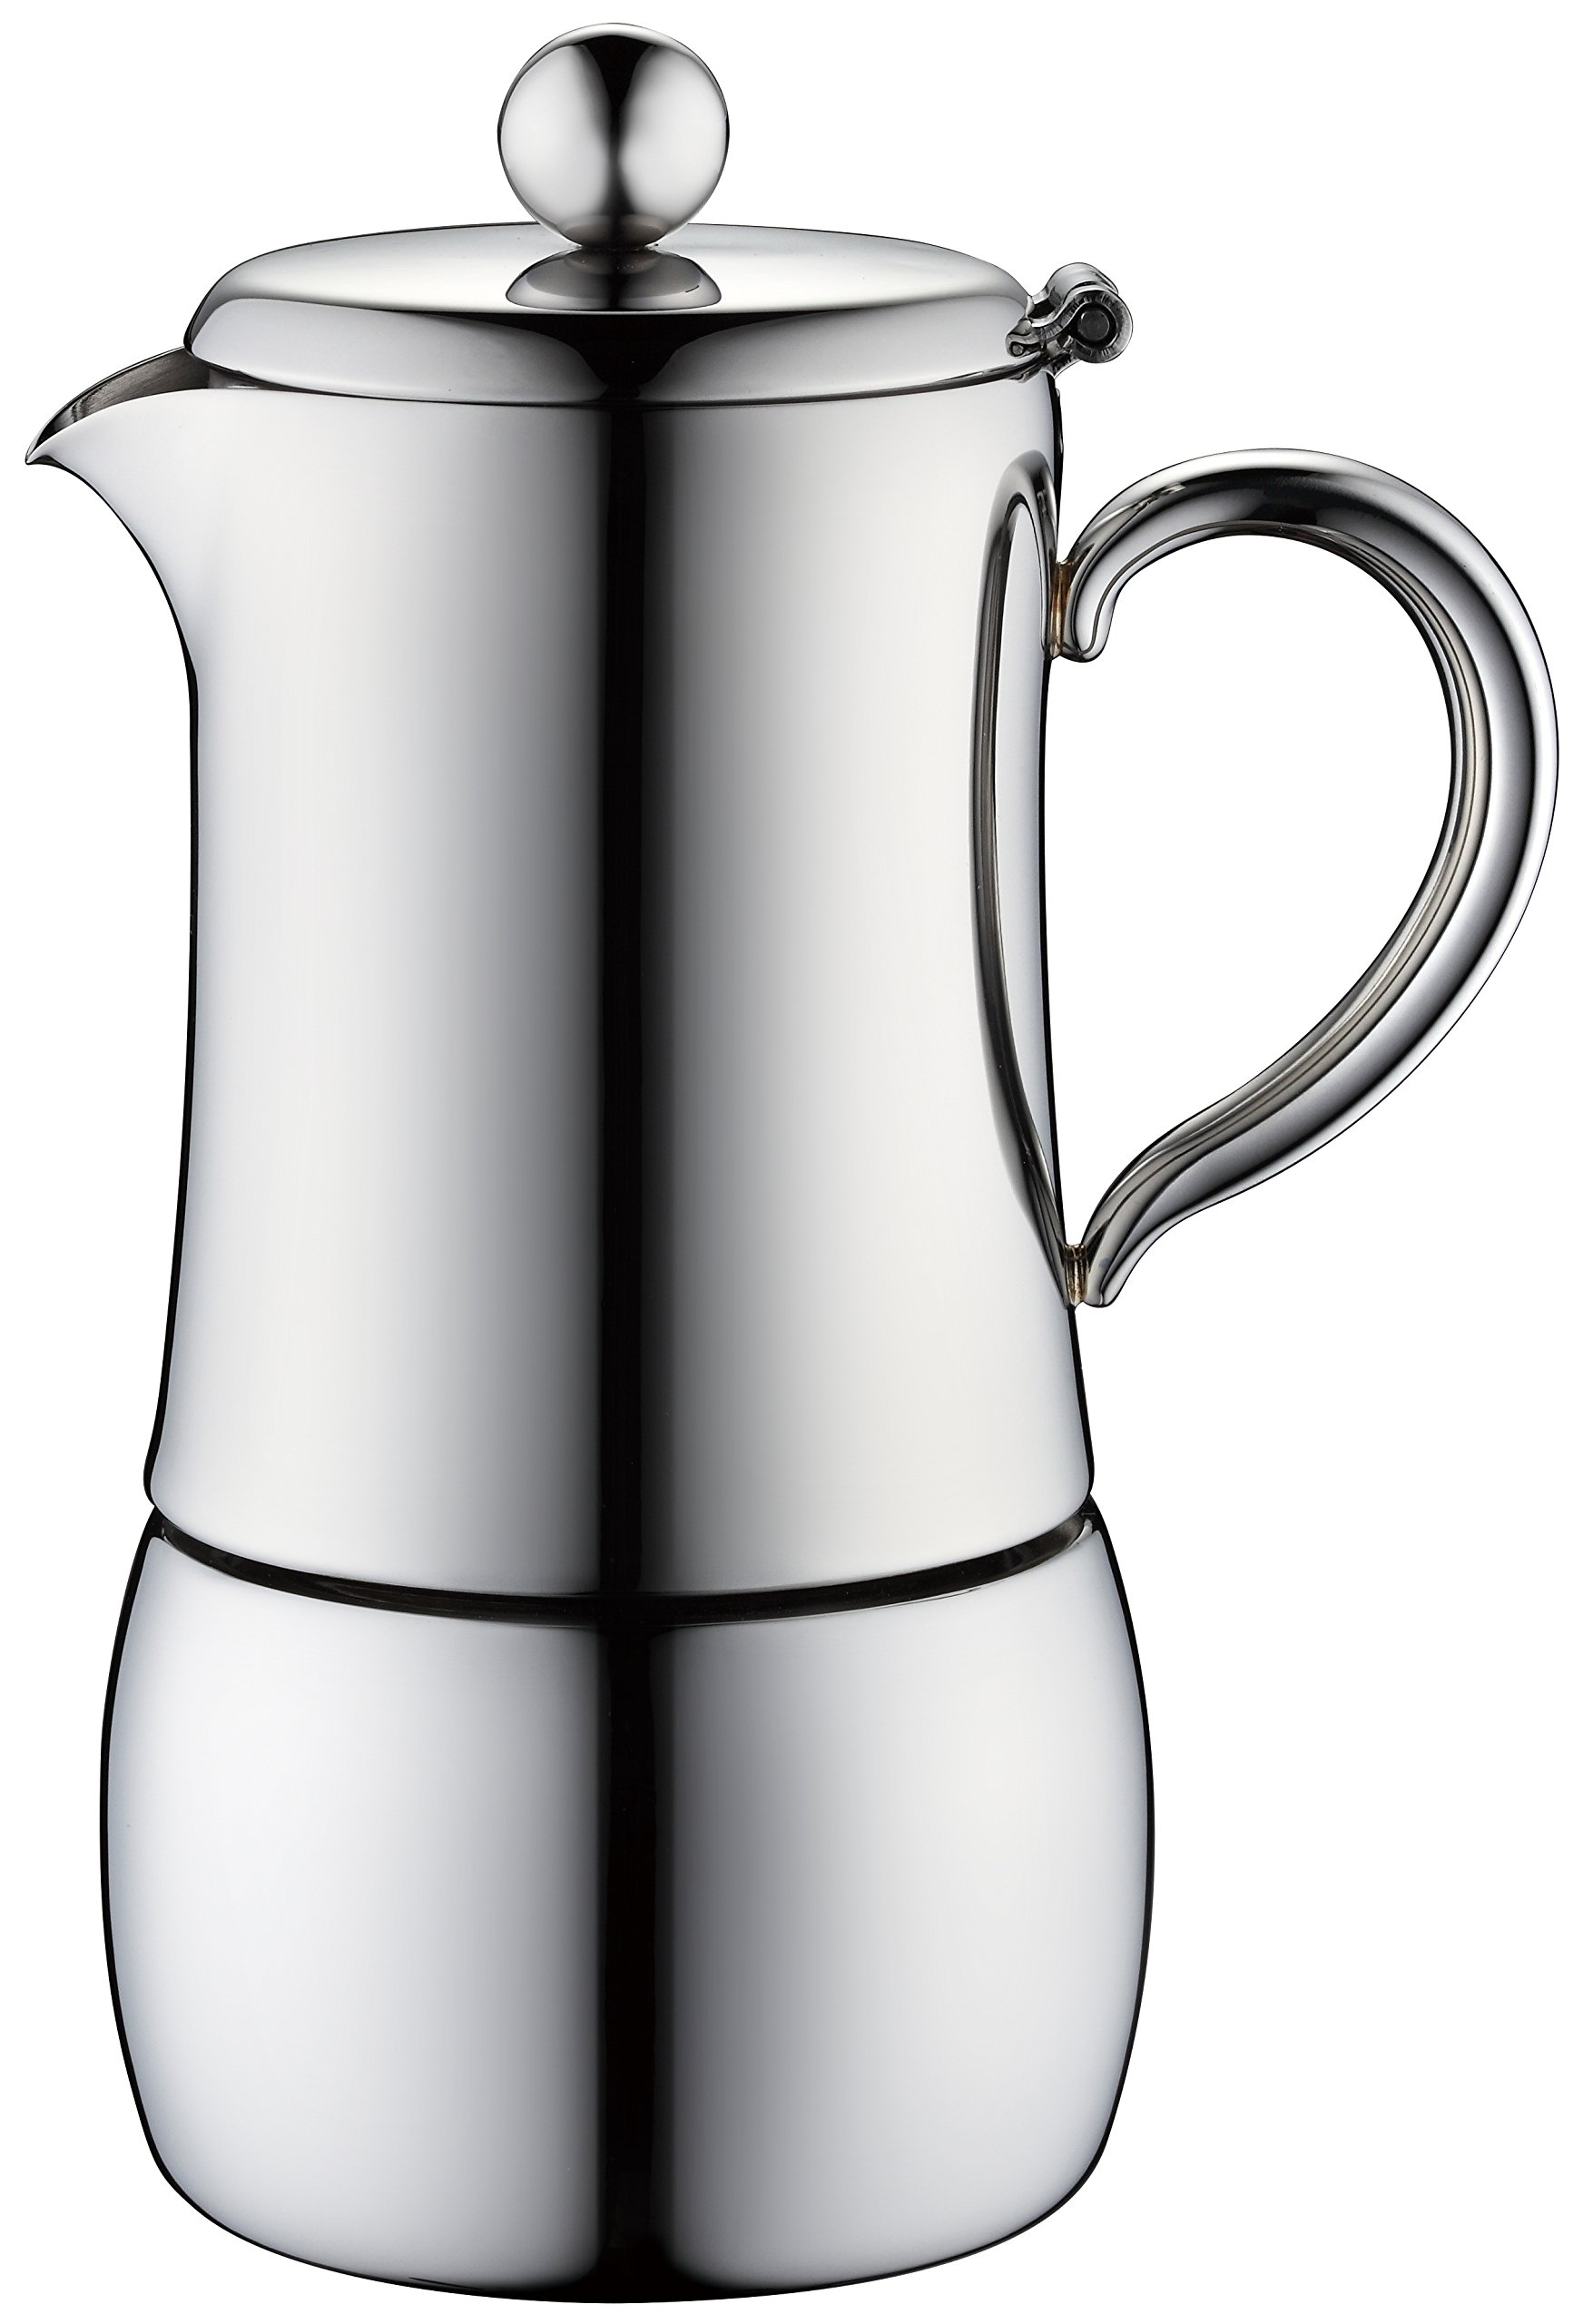 Minos Moka Pot 6-Cup Espresso Maker - Stainless Steel And Heatproof Handle - Sleek, Curvy, Elegant & Stylish Design- Suitable for Gas, Electric And Ceramic Stovetops by Minos (Image #1)